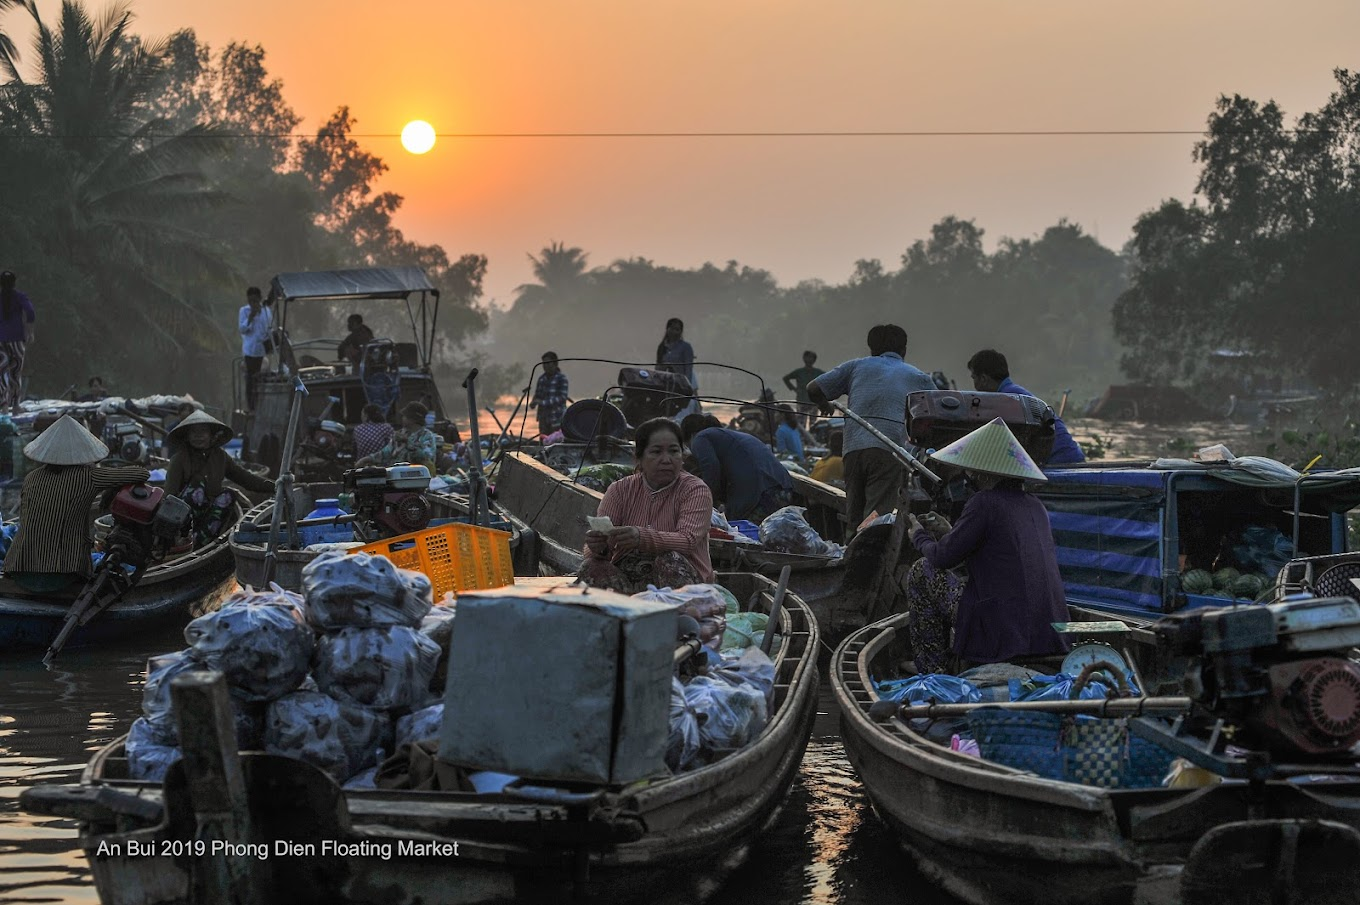 Sunrise with daily life in floating market